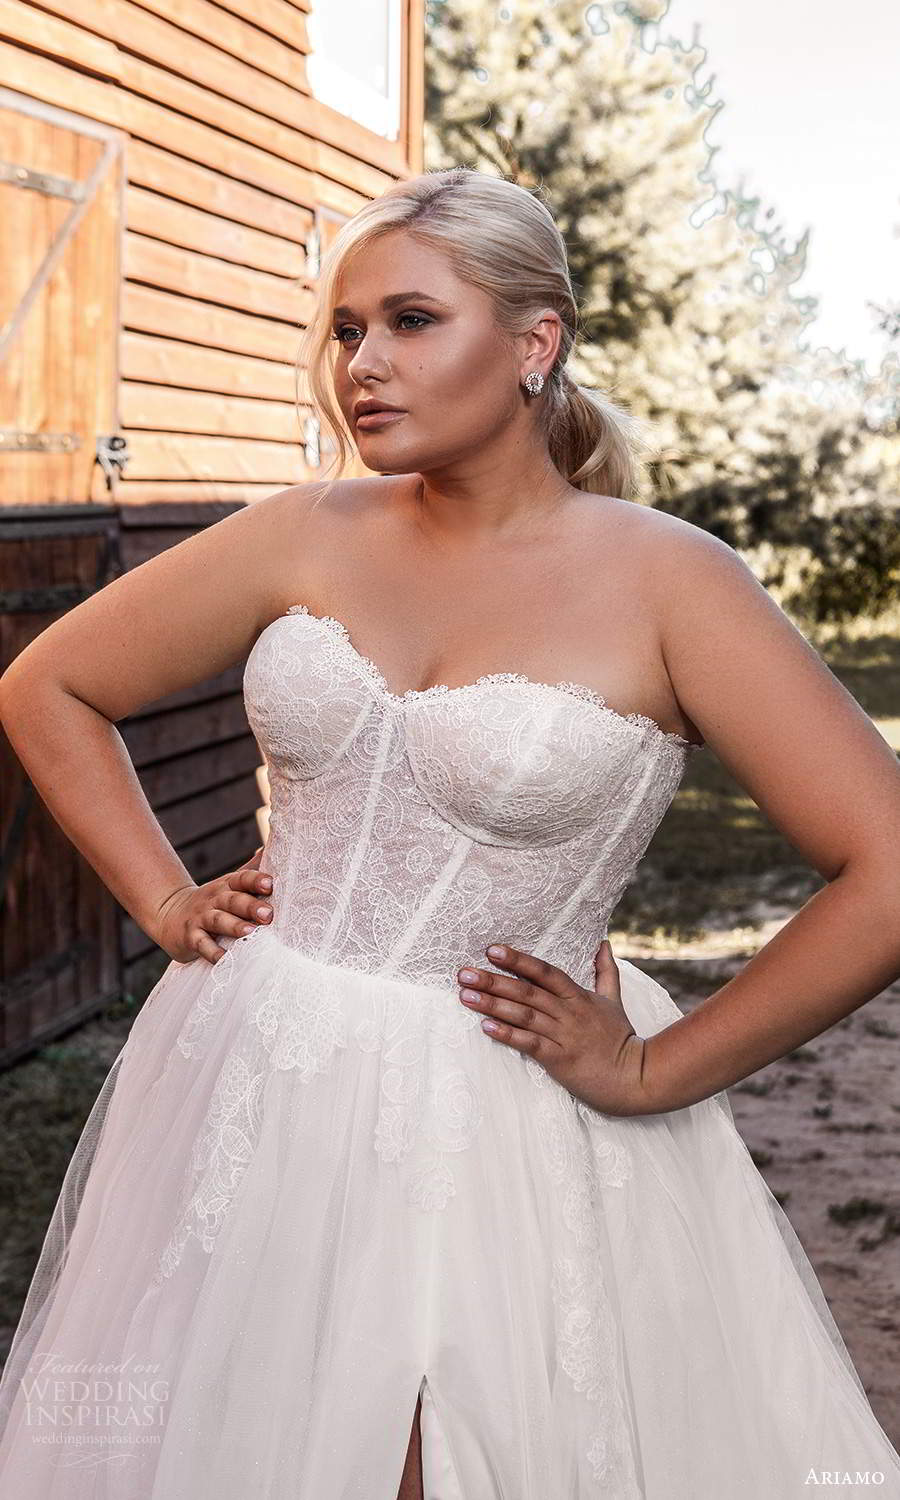 ariamo 2021 plus bridal detached puff sleeves strapless sweetheart neckline corset bodice a line ball gown wedding dress chapel train (10) zv